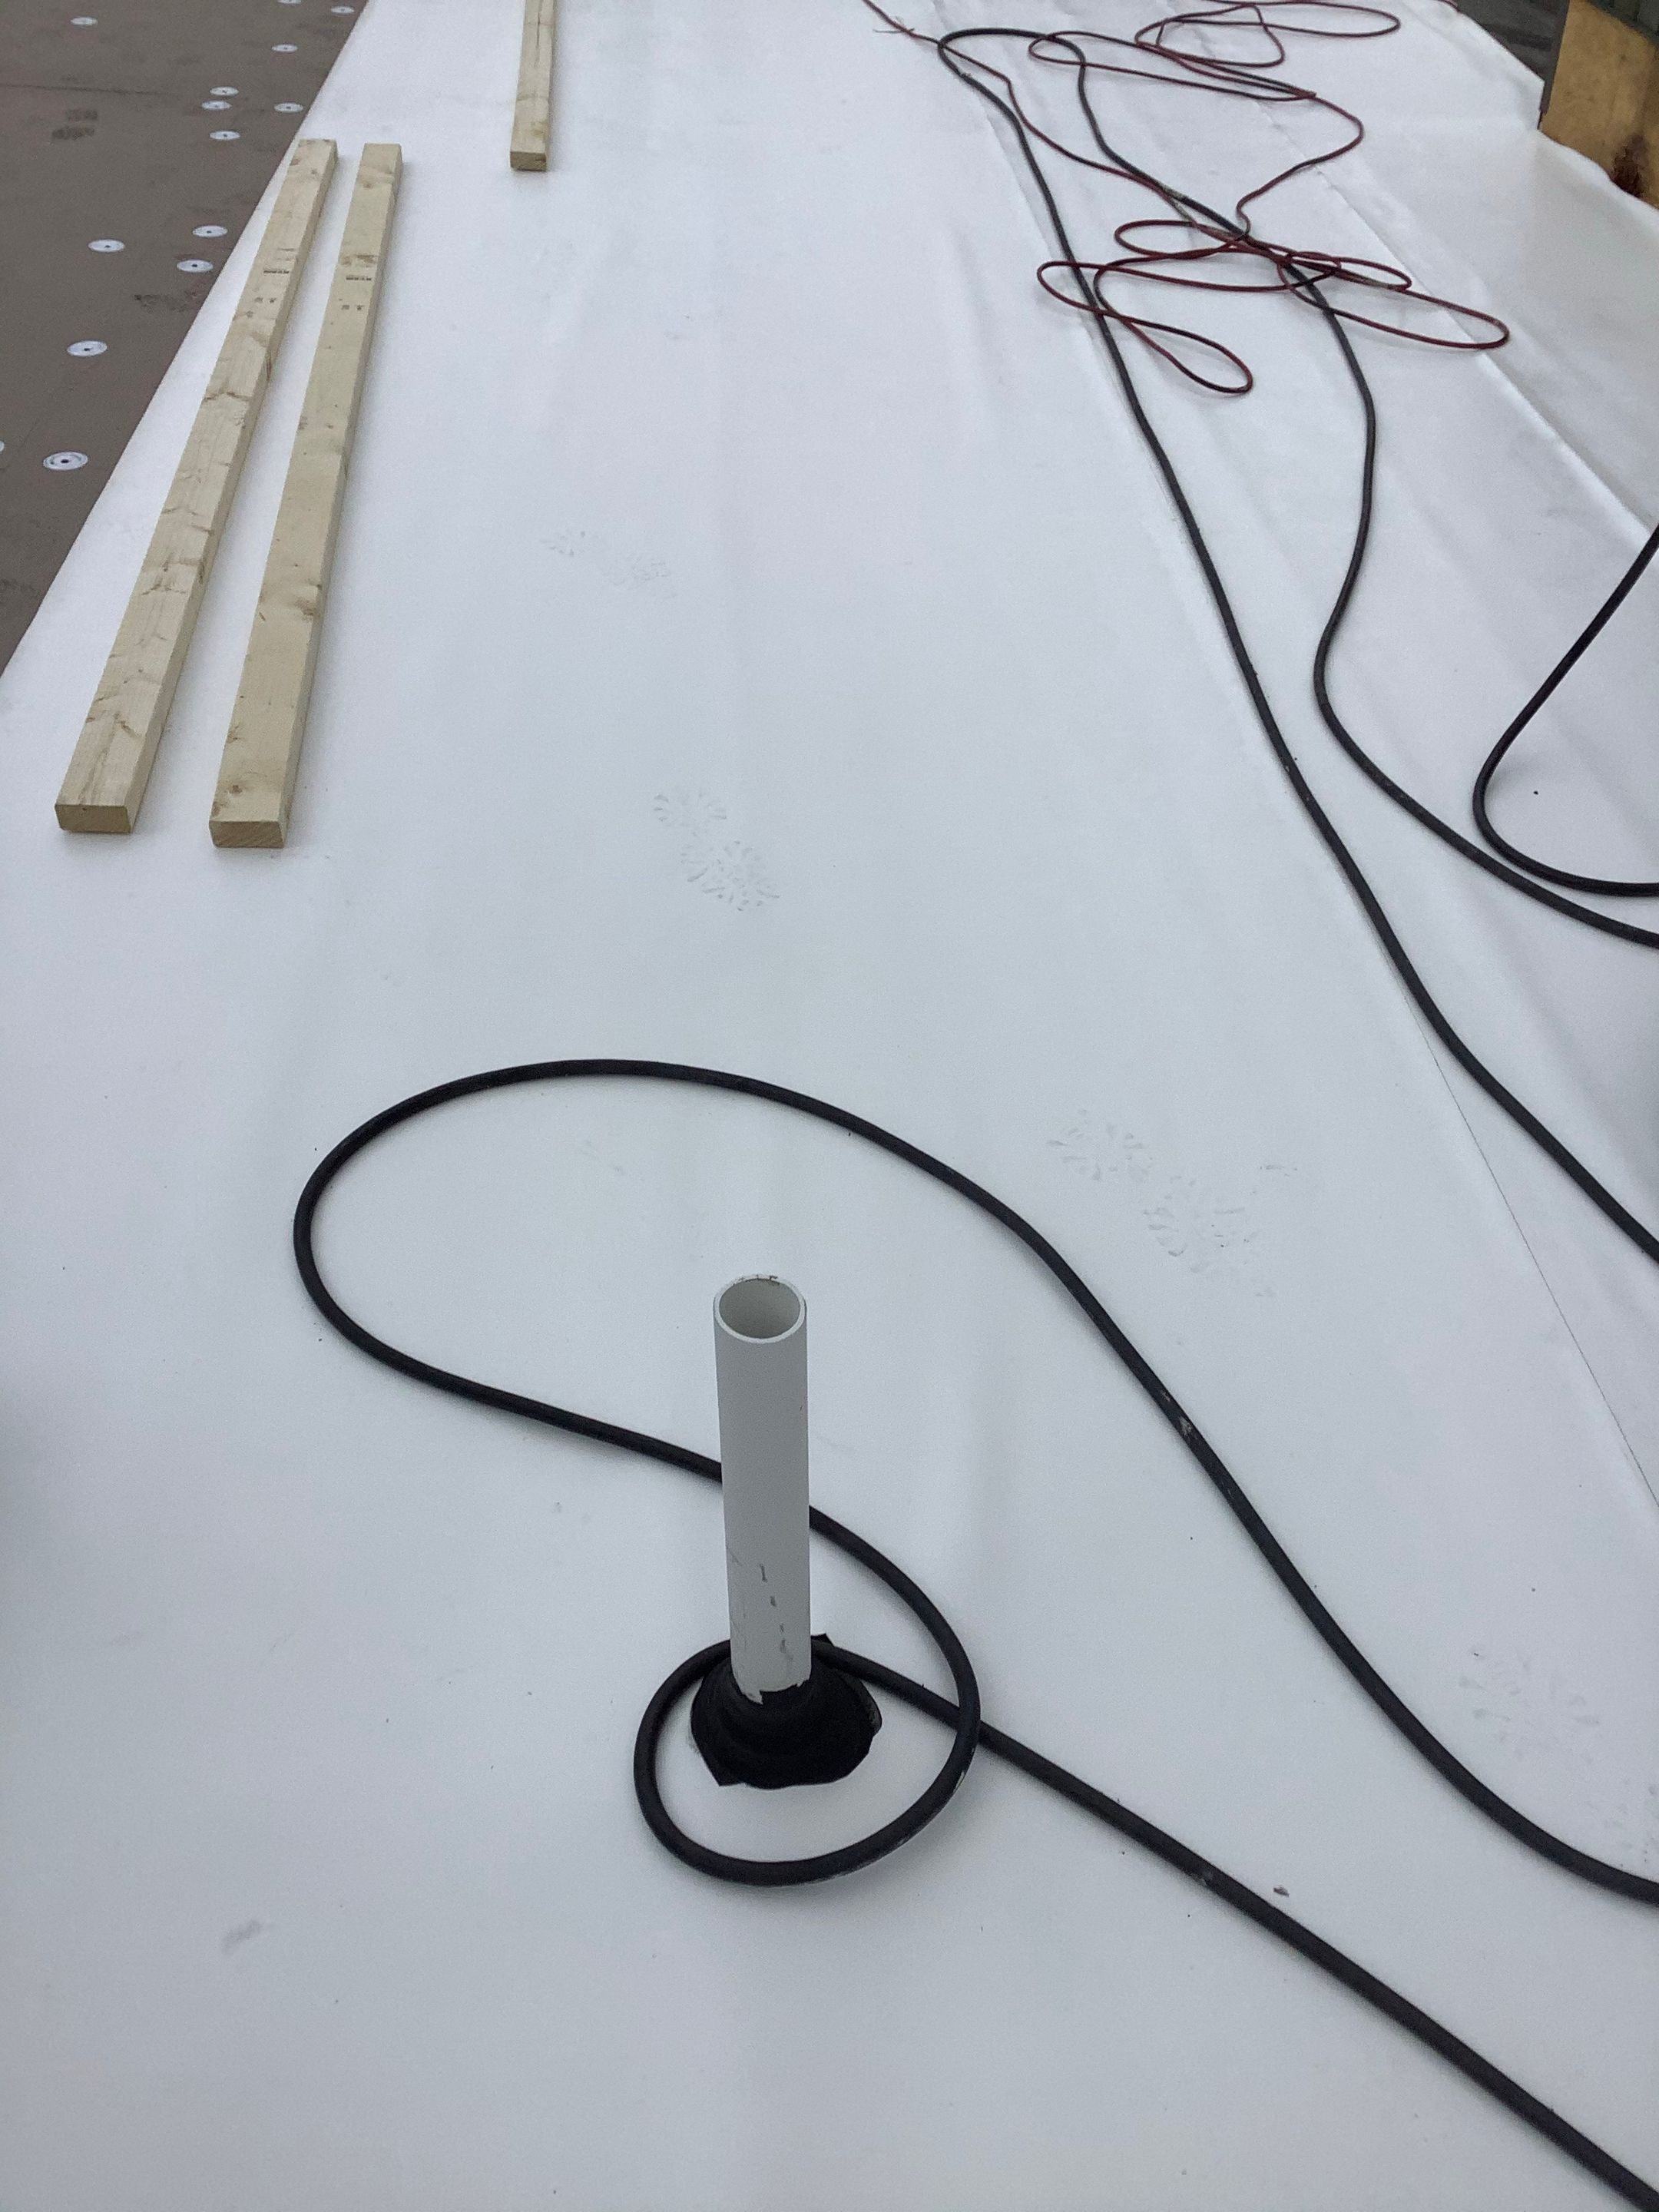 an in-progress installation of a cool roofing system